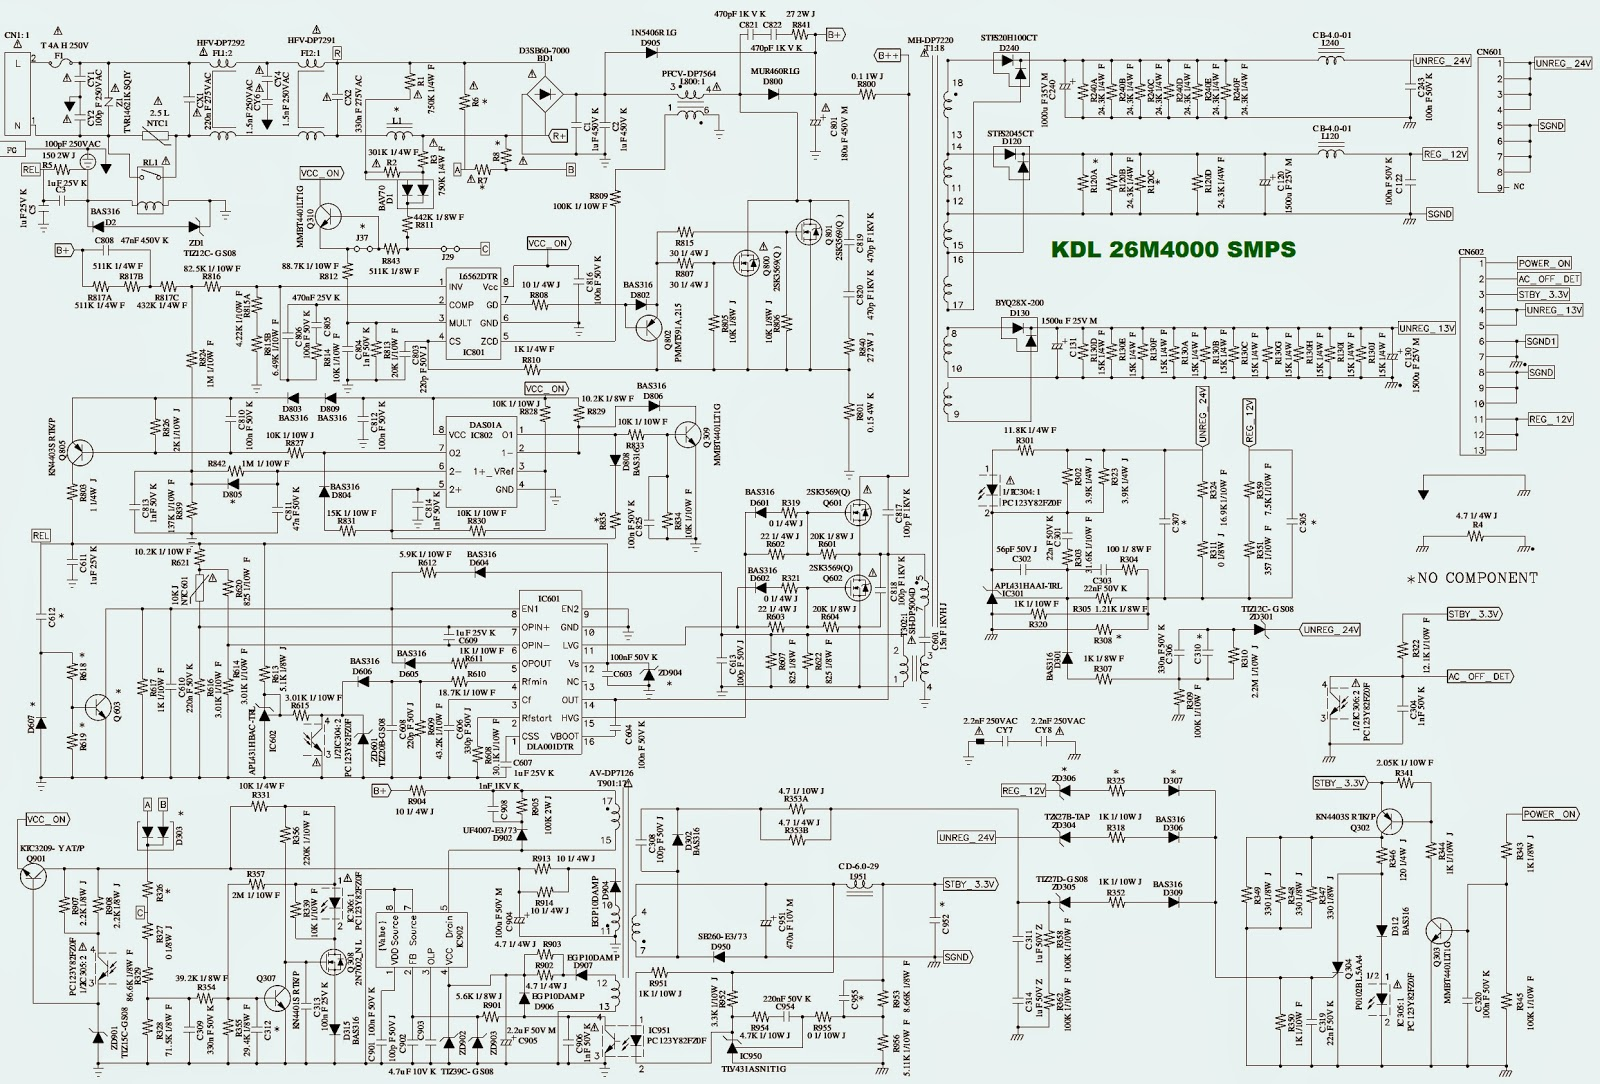 kdl 26m4000 sony bravia lcd tv power supply schematic circuit kdl 26m4000 sony bravia lcd [ 1600 x 1084 Pixel ]